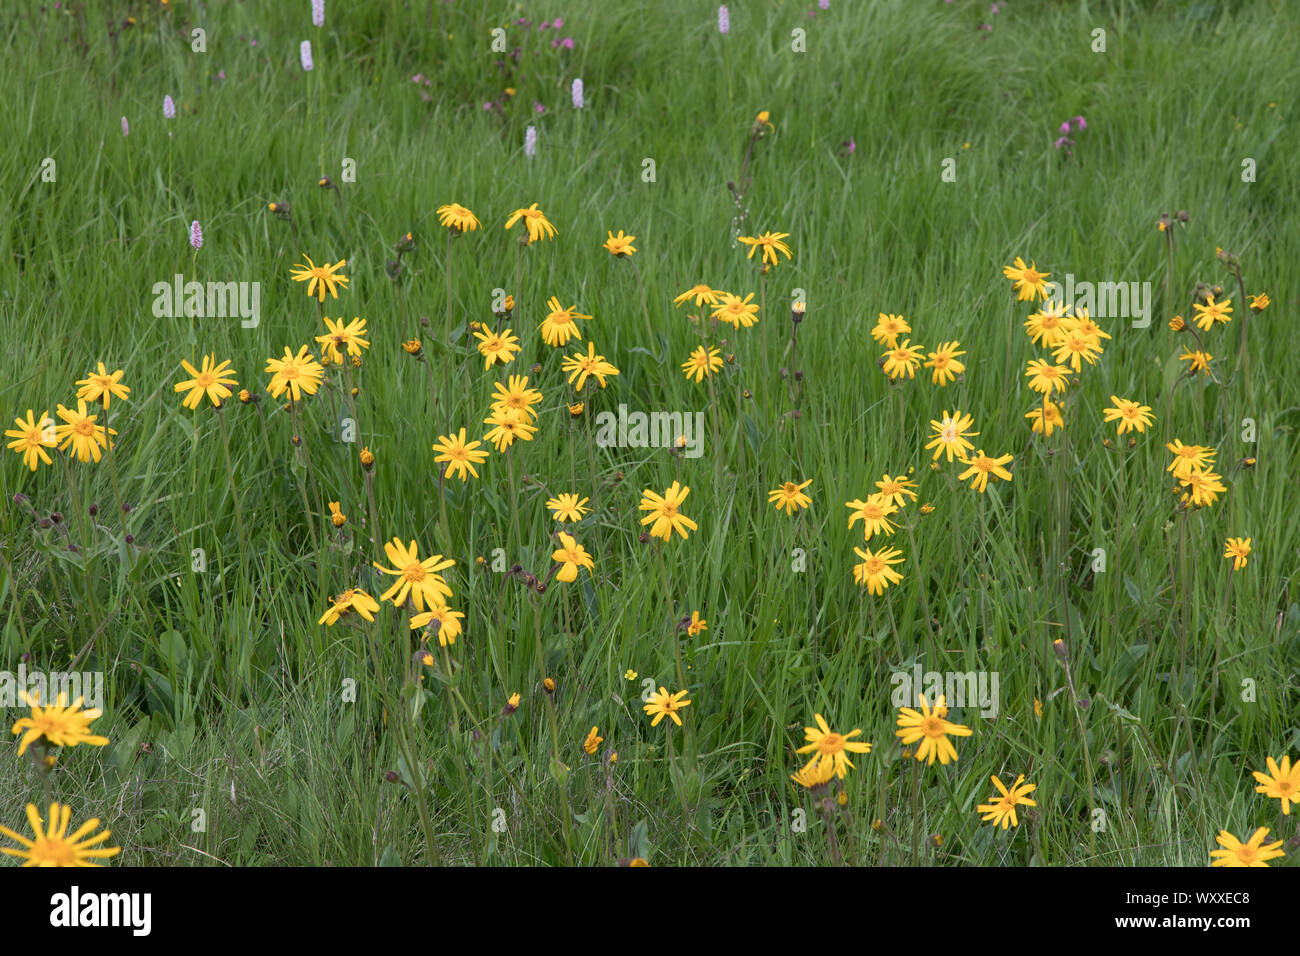 Echte Arnika, Arnica montana, mountain arnica Stock Photo